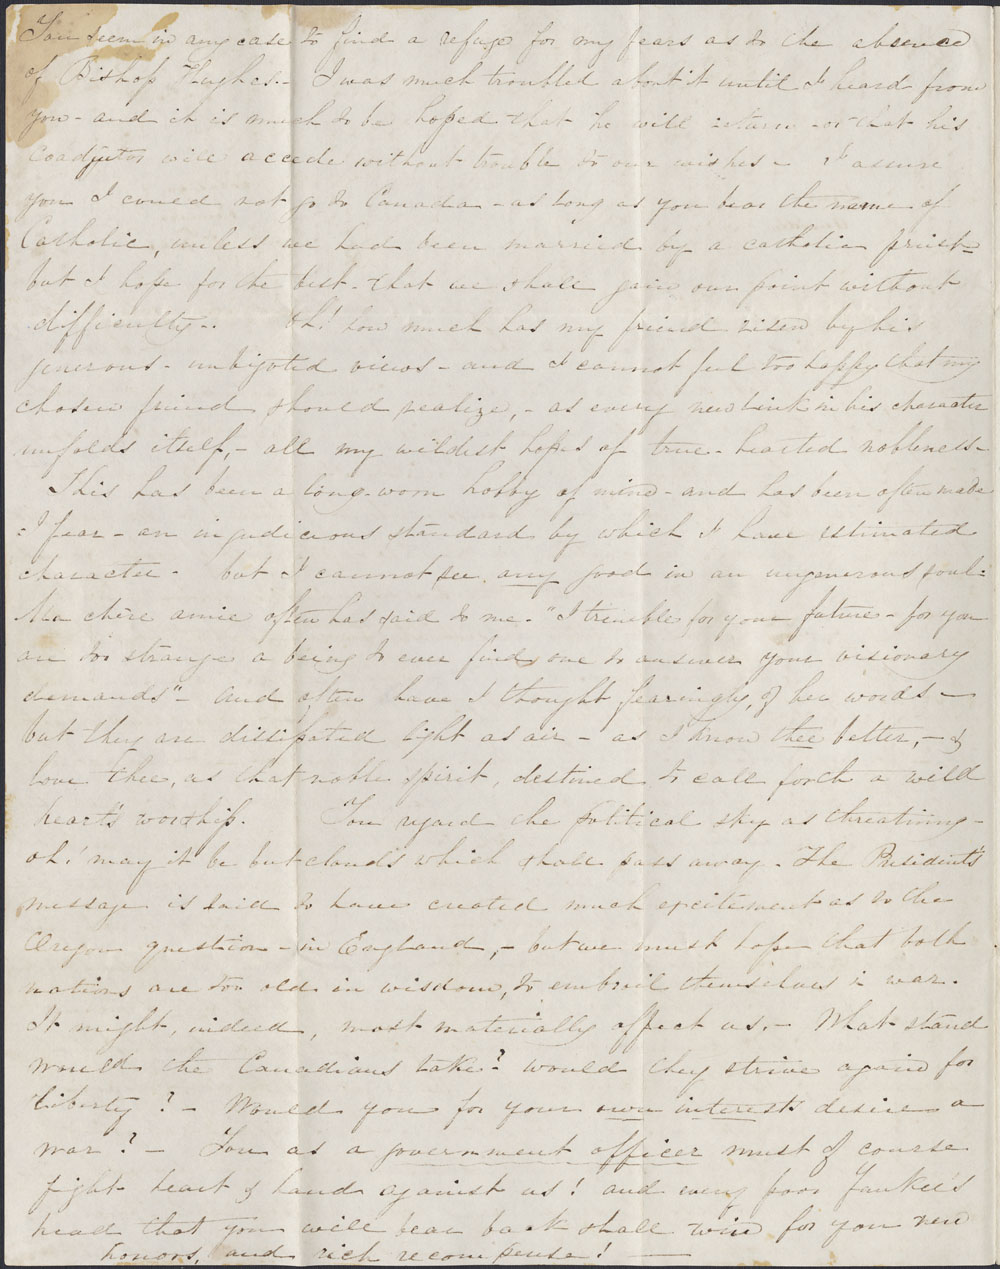 [Correspondence of Mary Westcott] 1846. (item 2)